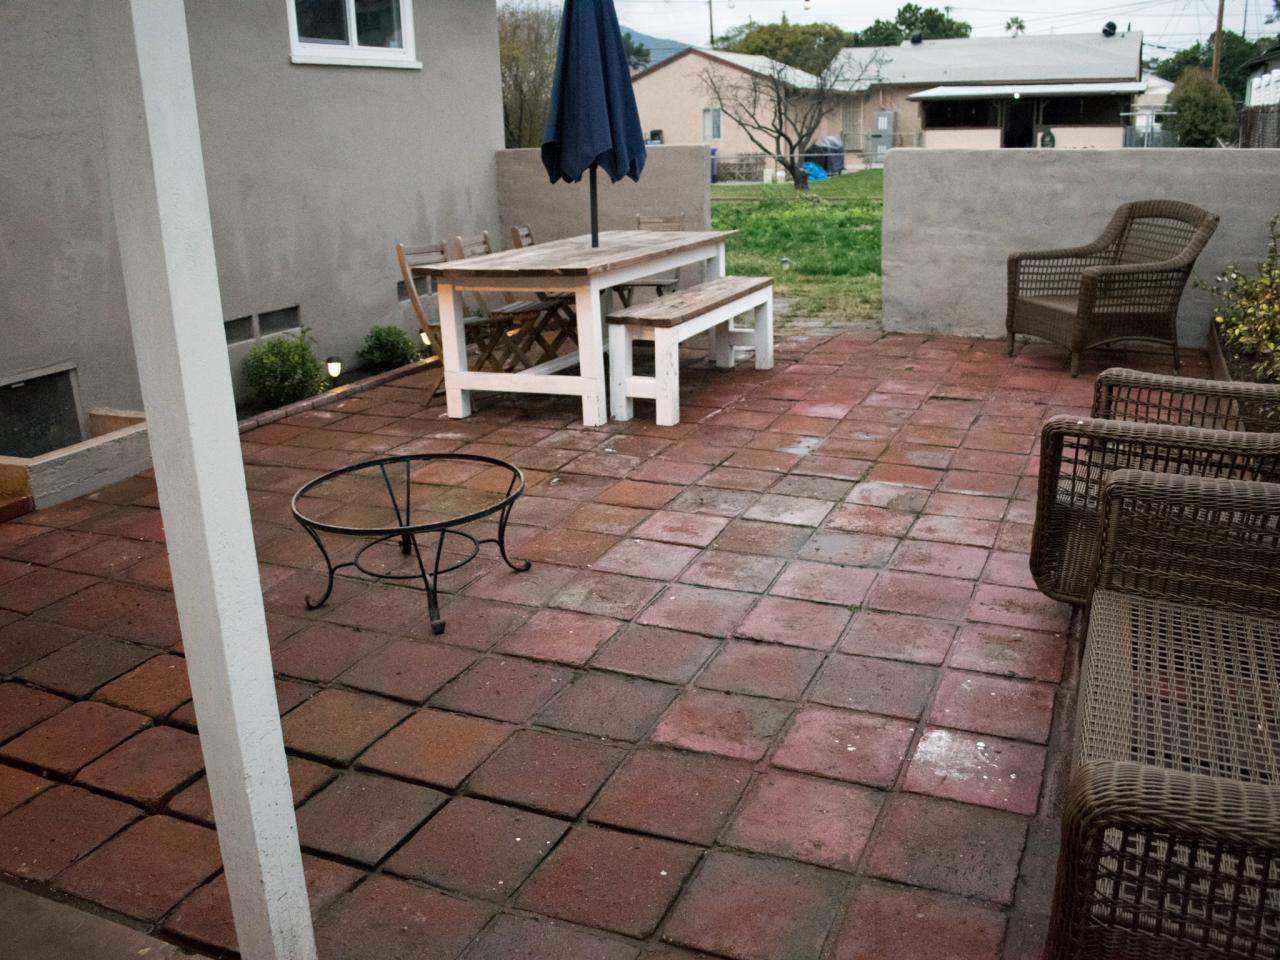 After - How To Clean Brick And Concrete With A Pressure Washer DIY